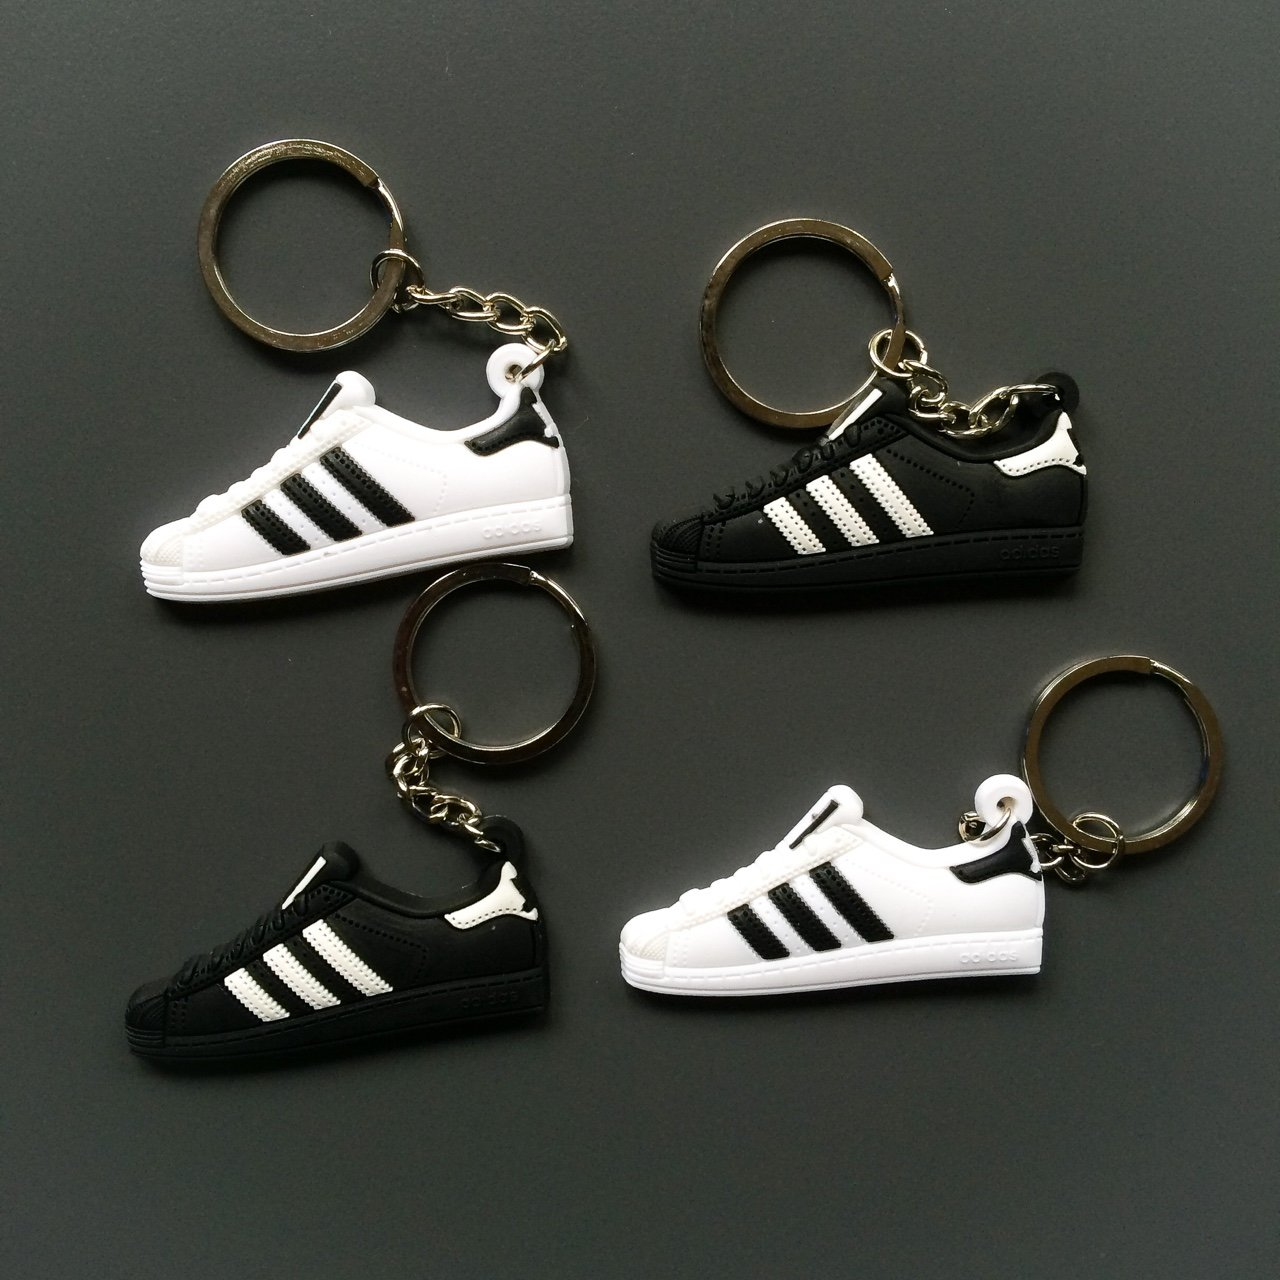 half off ad762 ce898 Adidas Superstar keychain. €5 and shipping included for ones - Depop